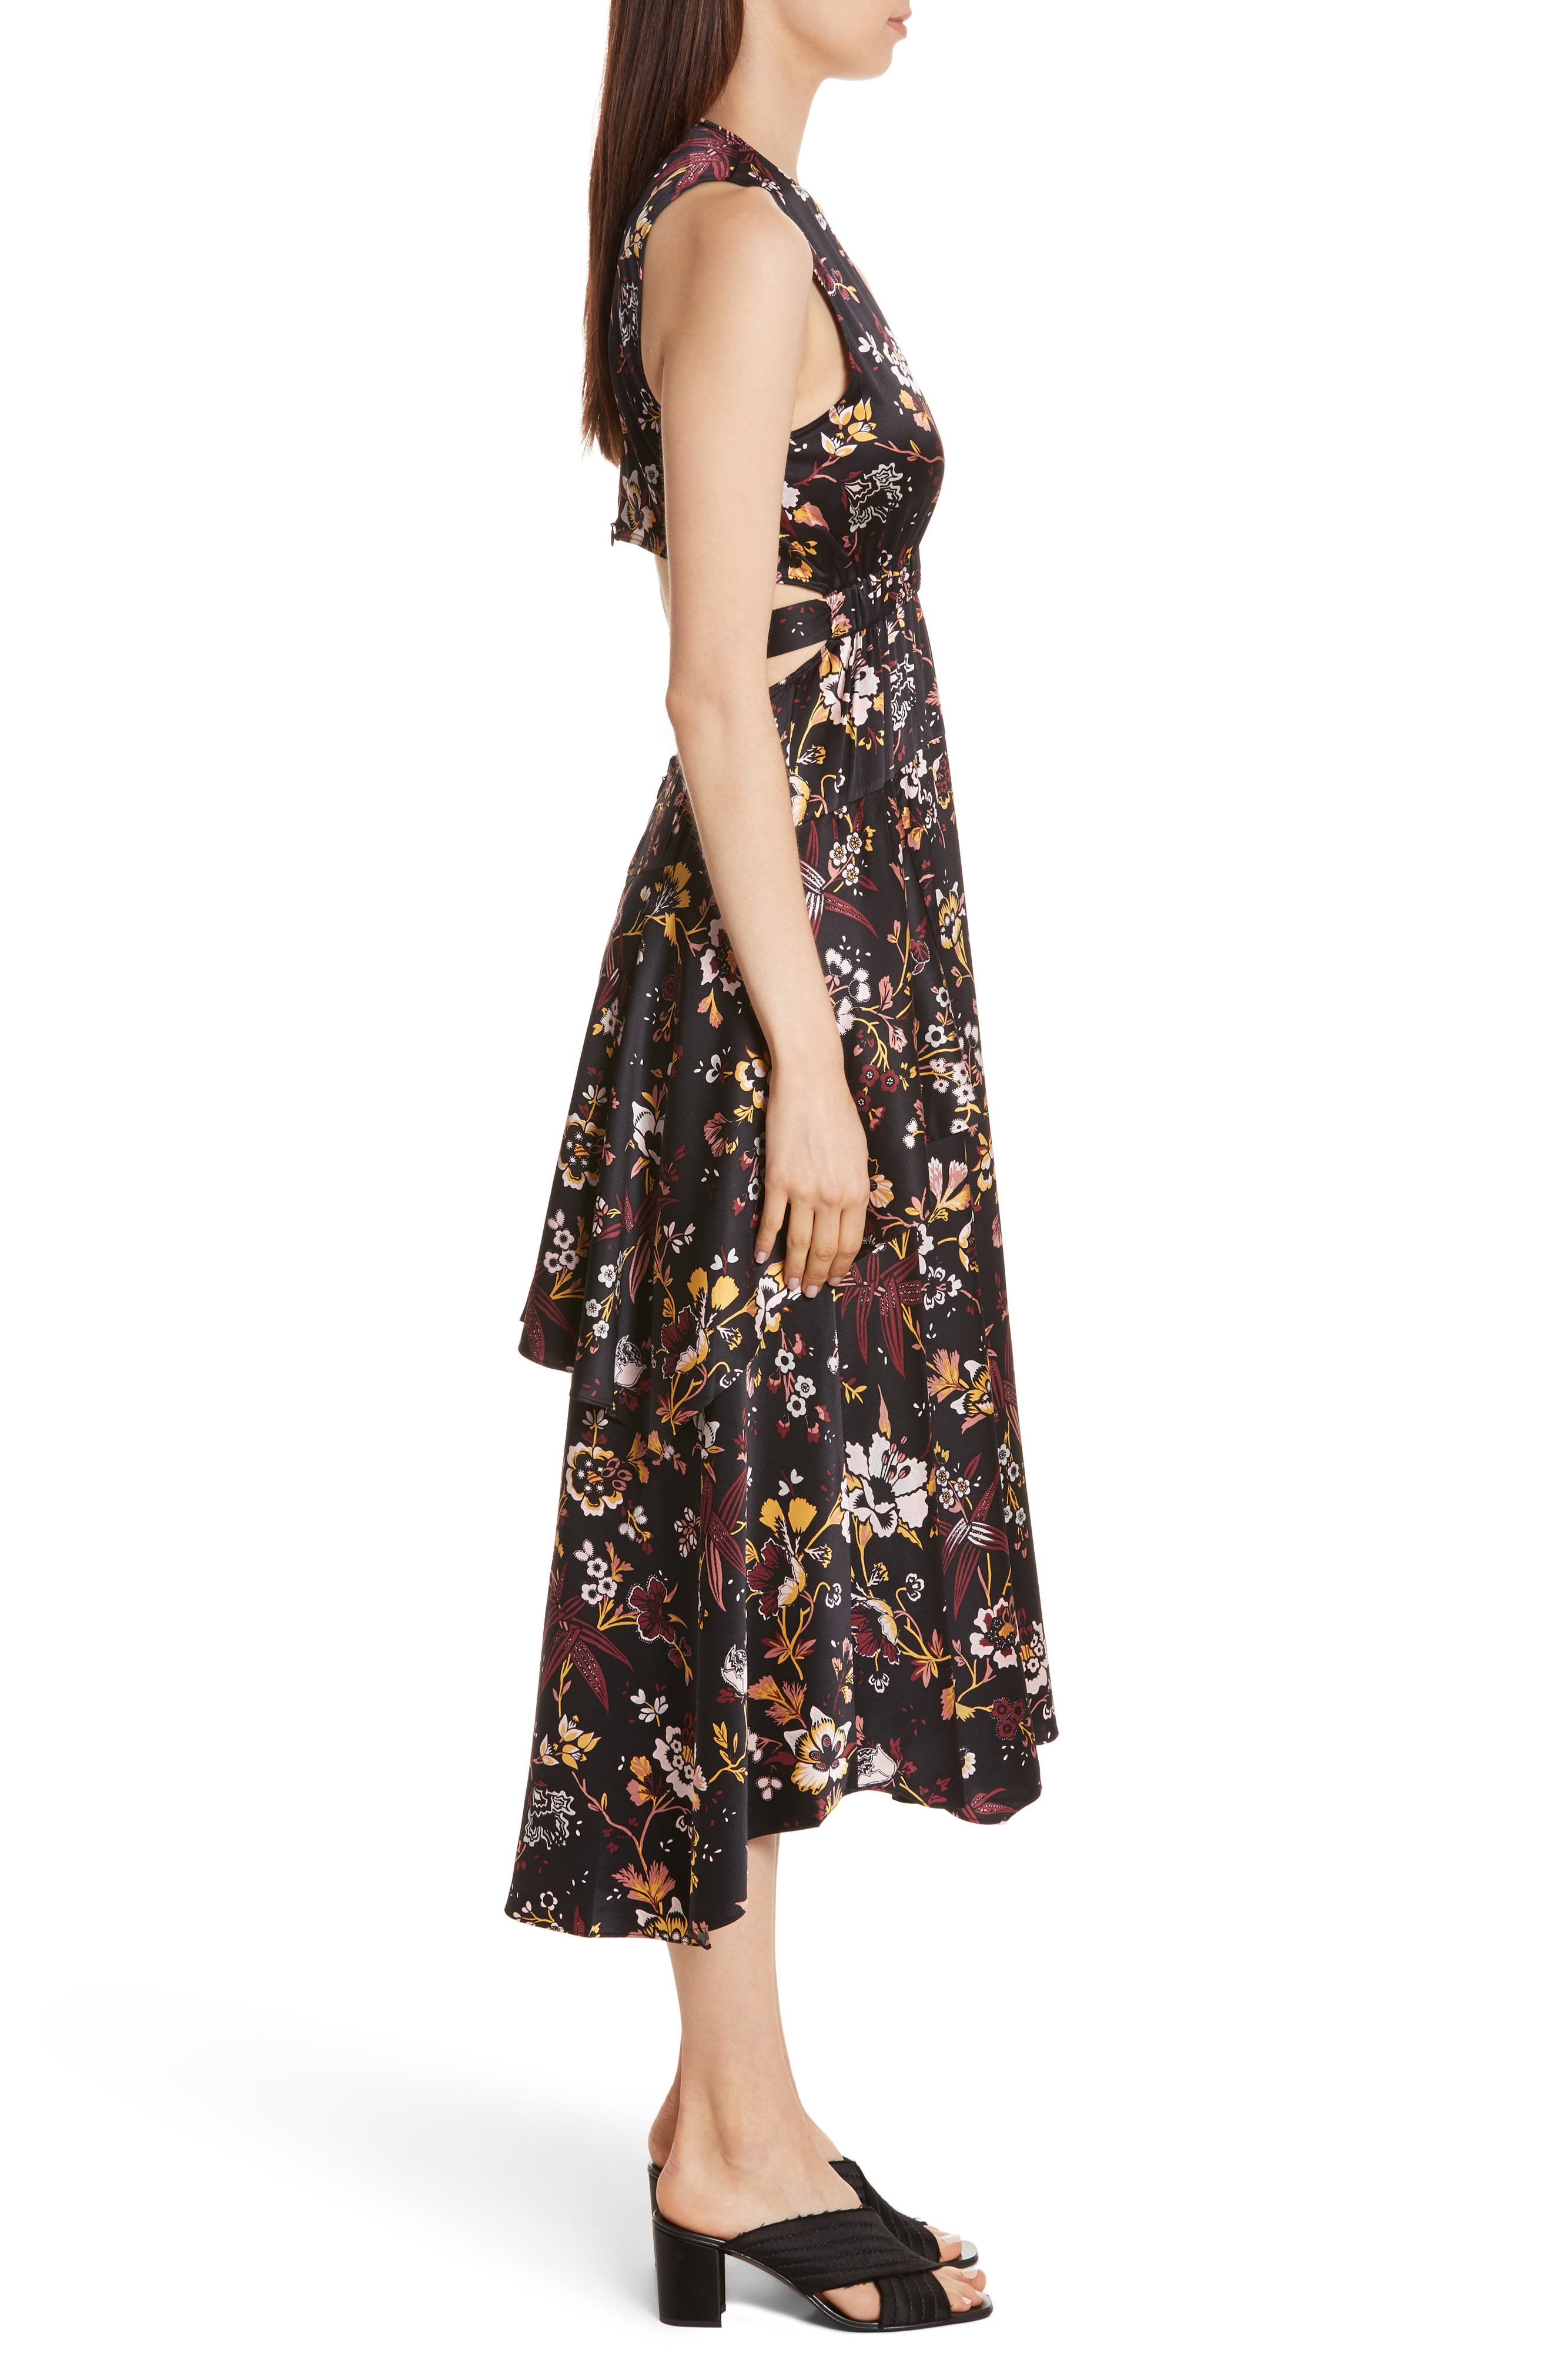 Verbena Floral Print Stretch Silk Dress,                             Alternate thumbnail 3, color,                             Black/ Grey/ Mustard